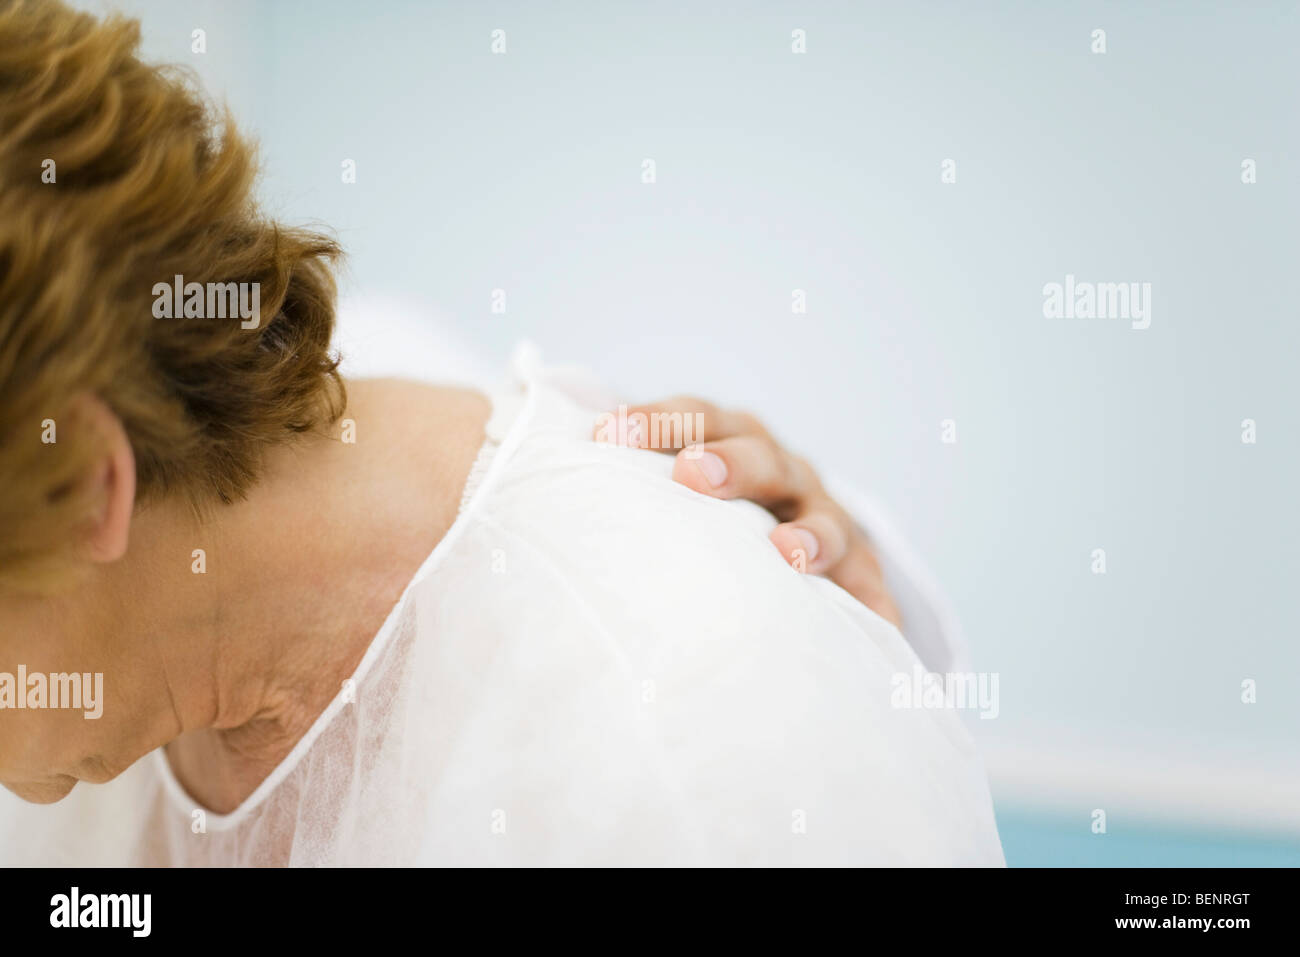 Patient being consoled by doctor, head down, cropped - Stock Image